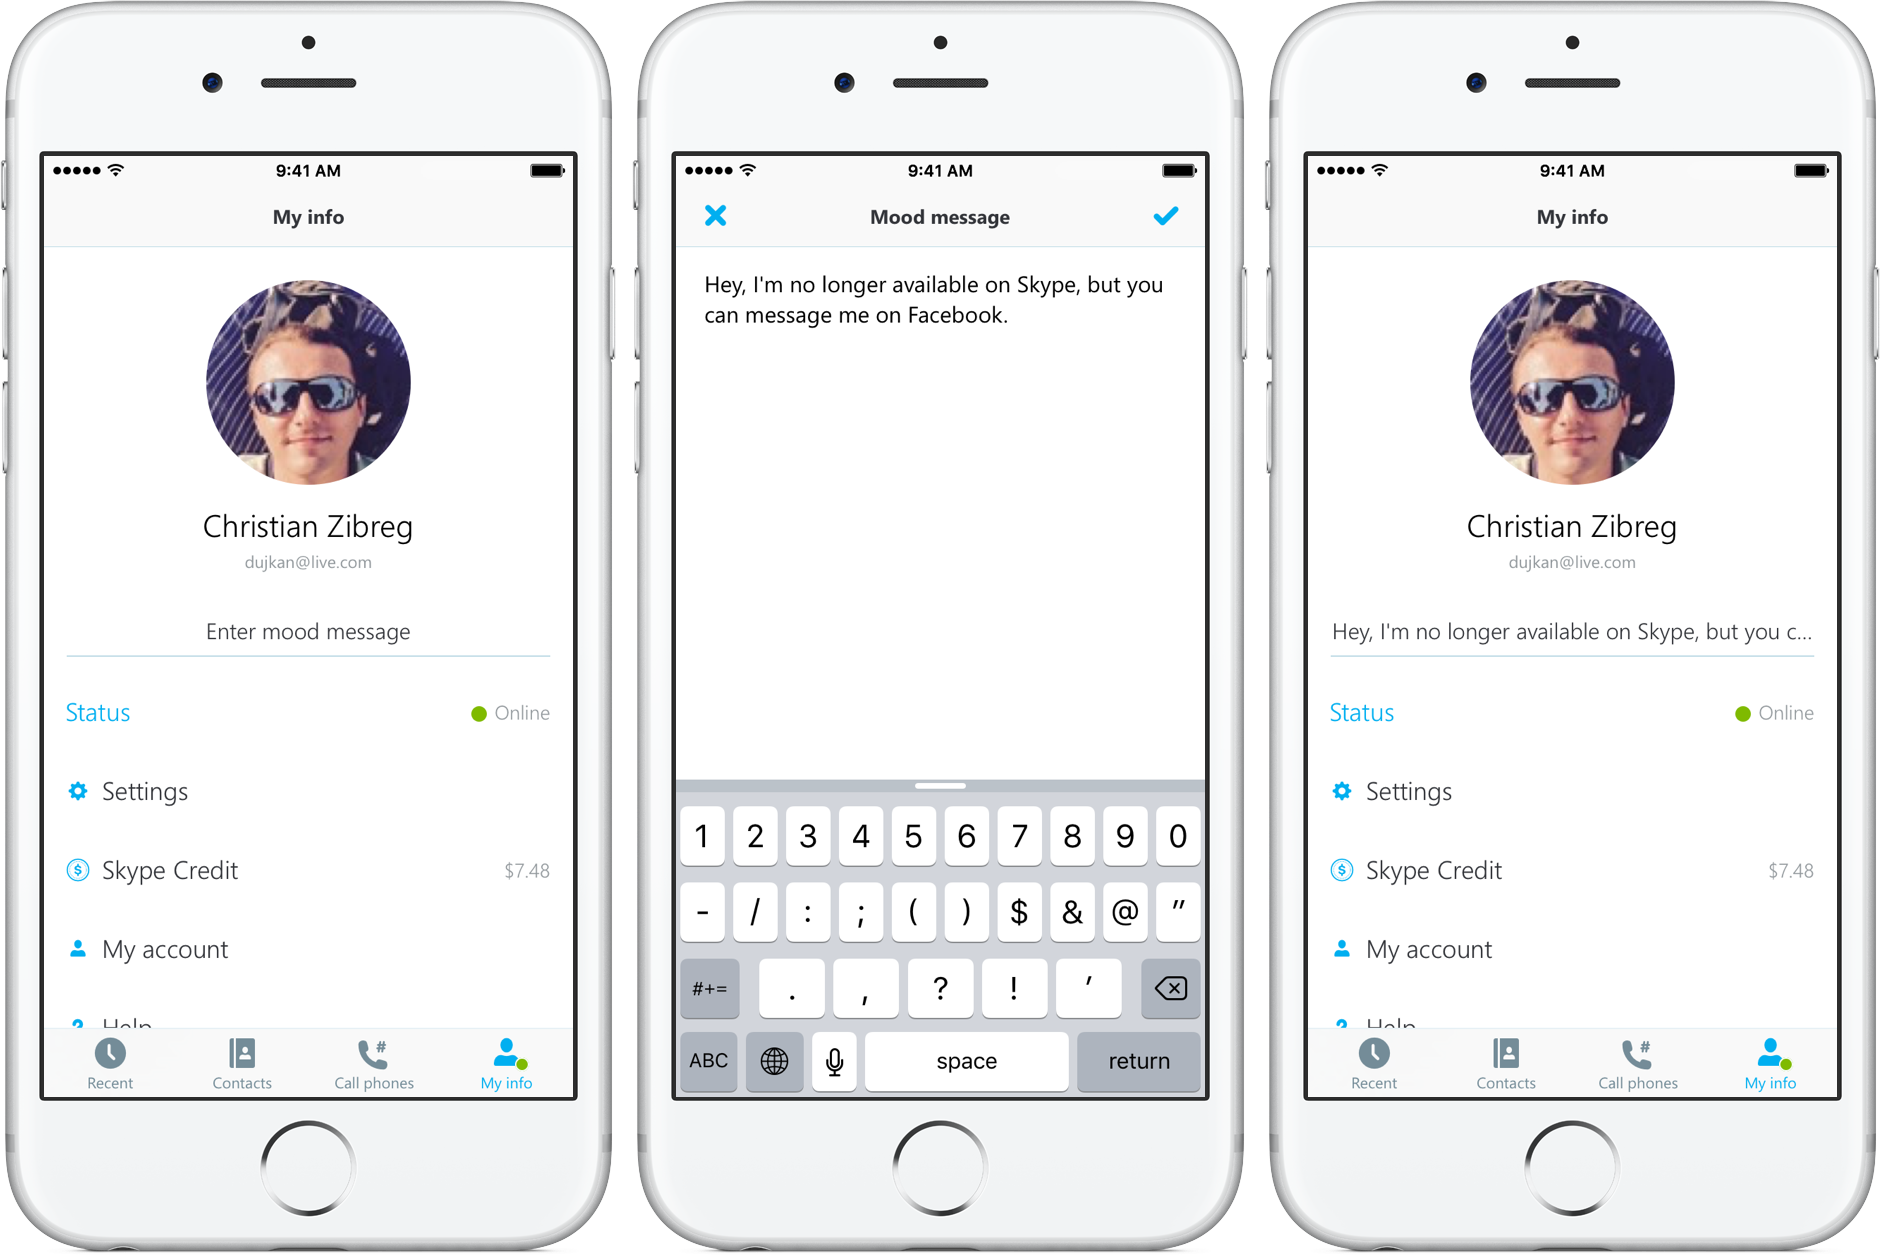 Update your Skype status